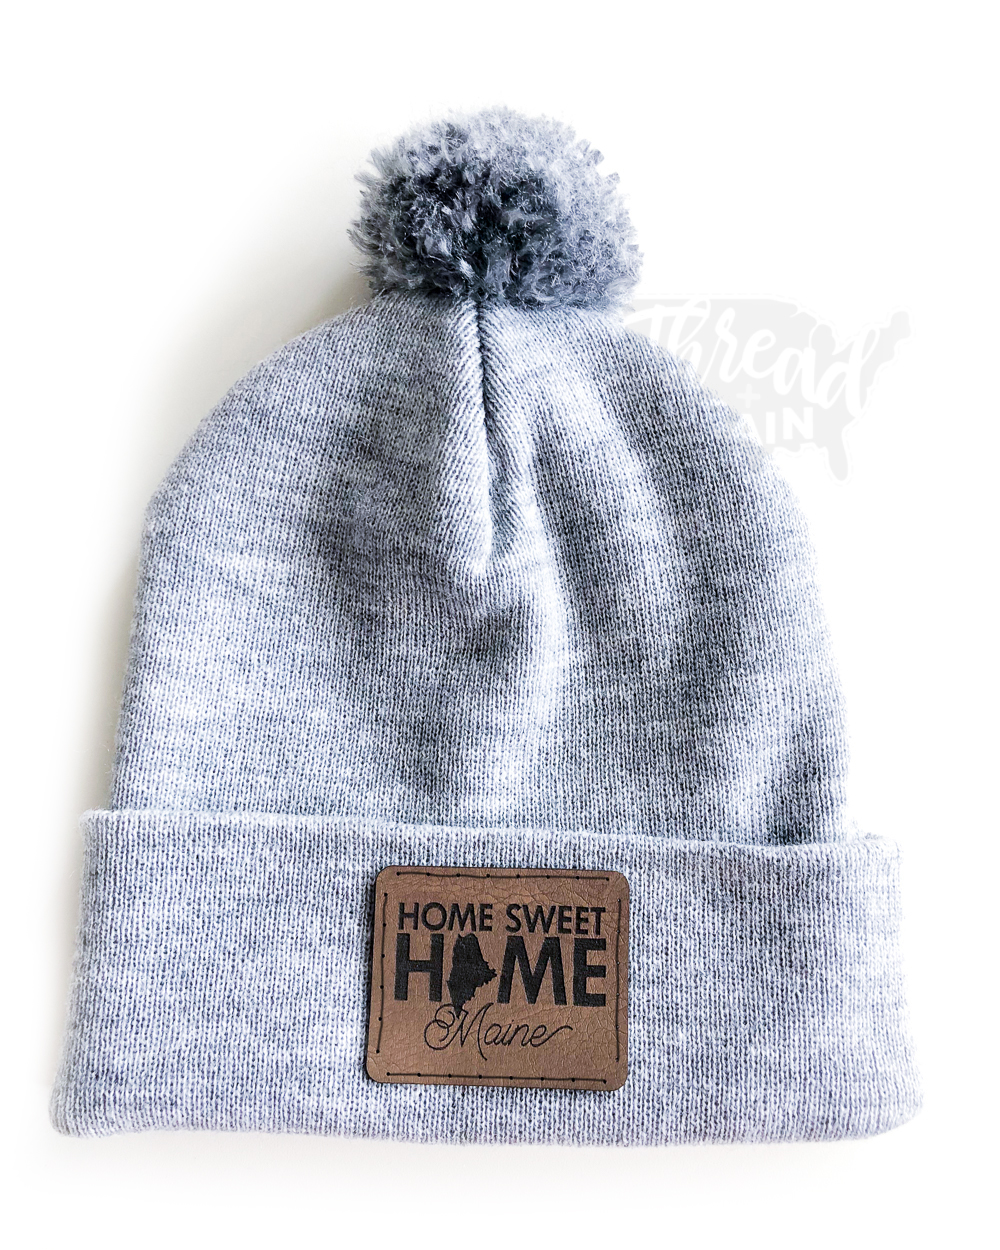 Maine :: Home Sweet Home PATCHED HAT